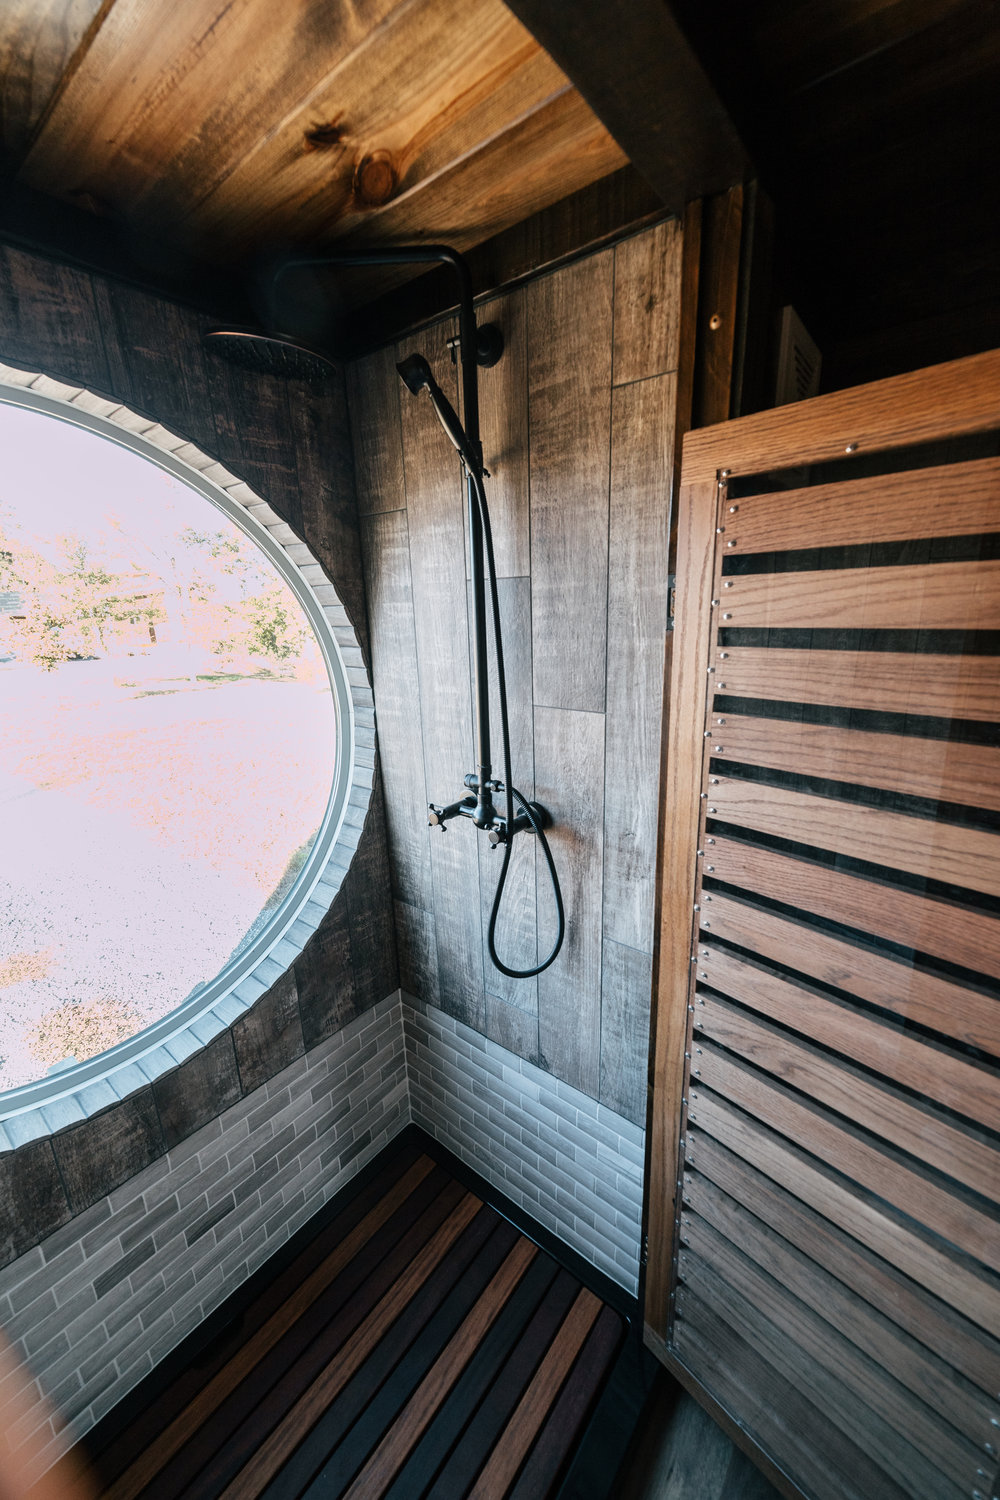 The Silhouette by Wind River Tiny Homes - oak wood slat/Plexiglass shower stall doors, limestone tile, faux wood tile, oil rubbed bronze rain shower head with handheld, cumaru wood shower deck insert